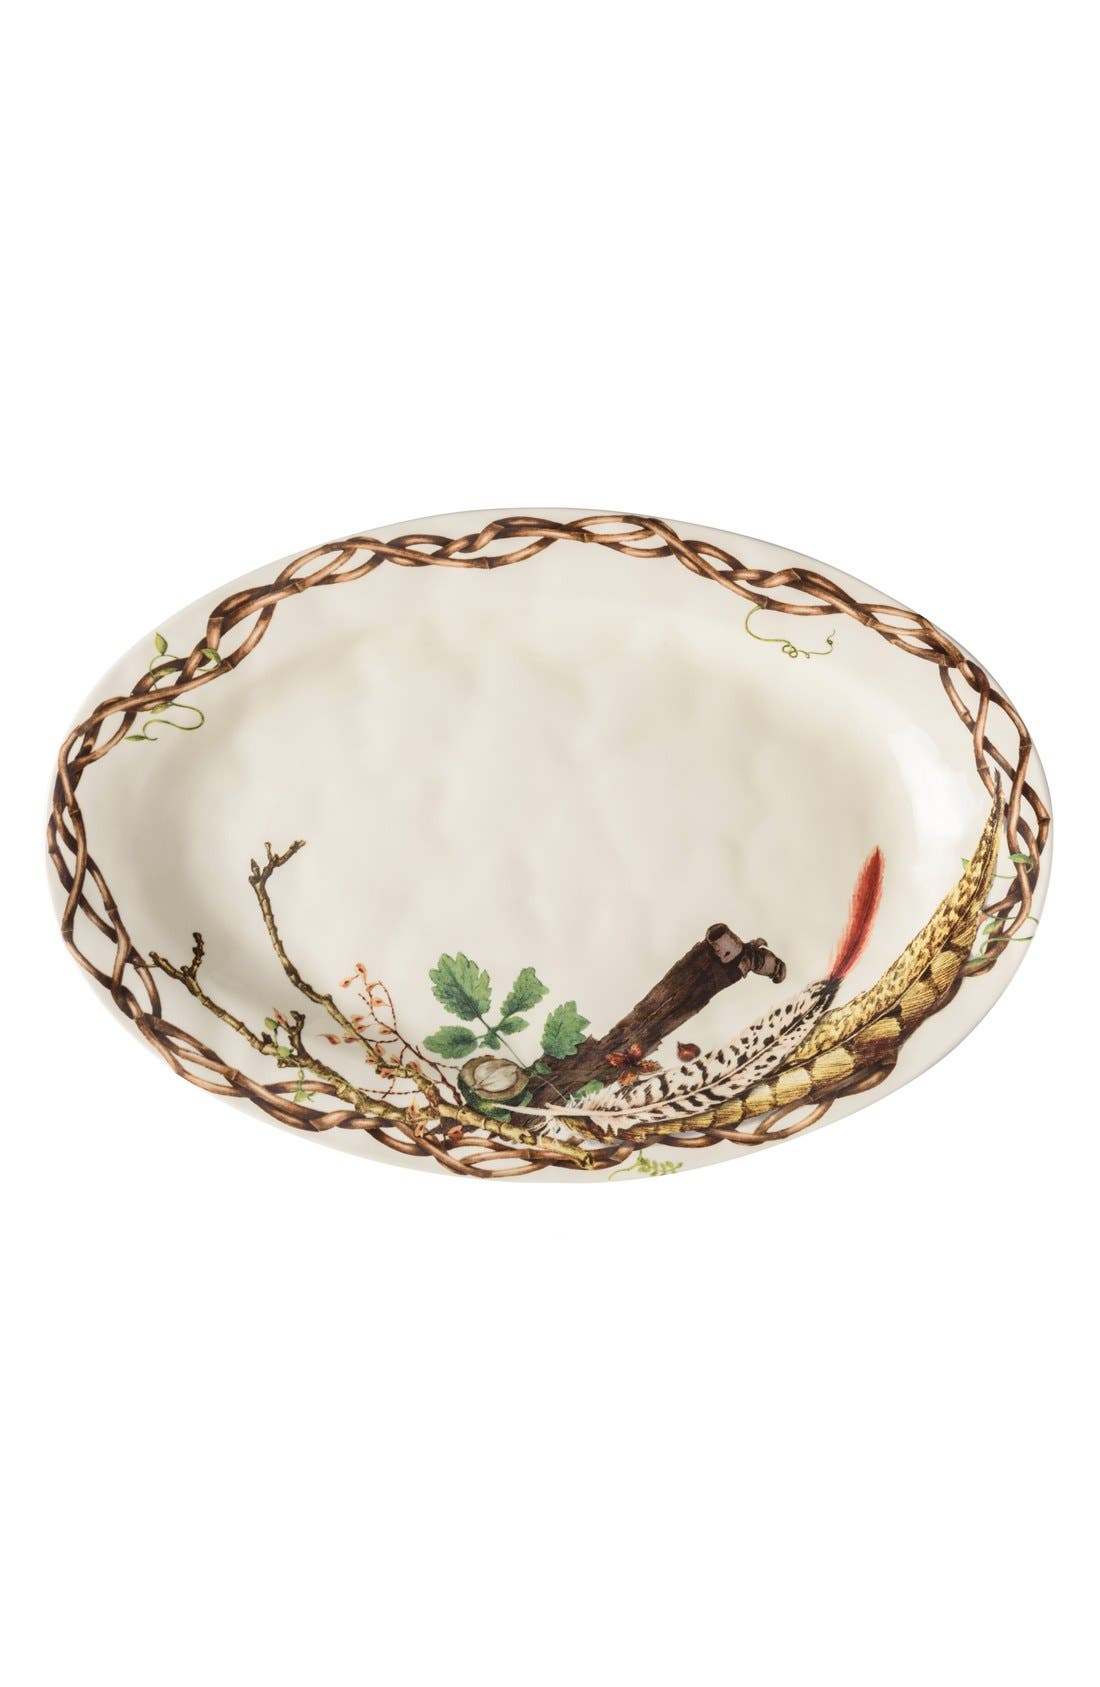 Forest Walk Oval Ceramic Platter,                             Main thumbnail 1, color,                             250